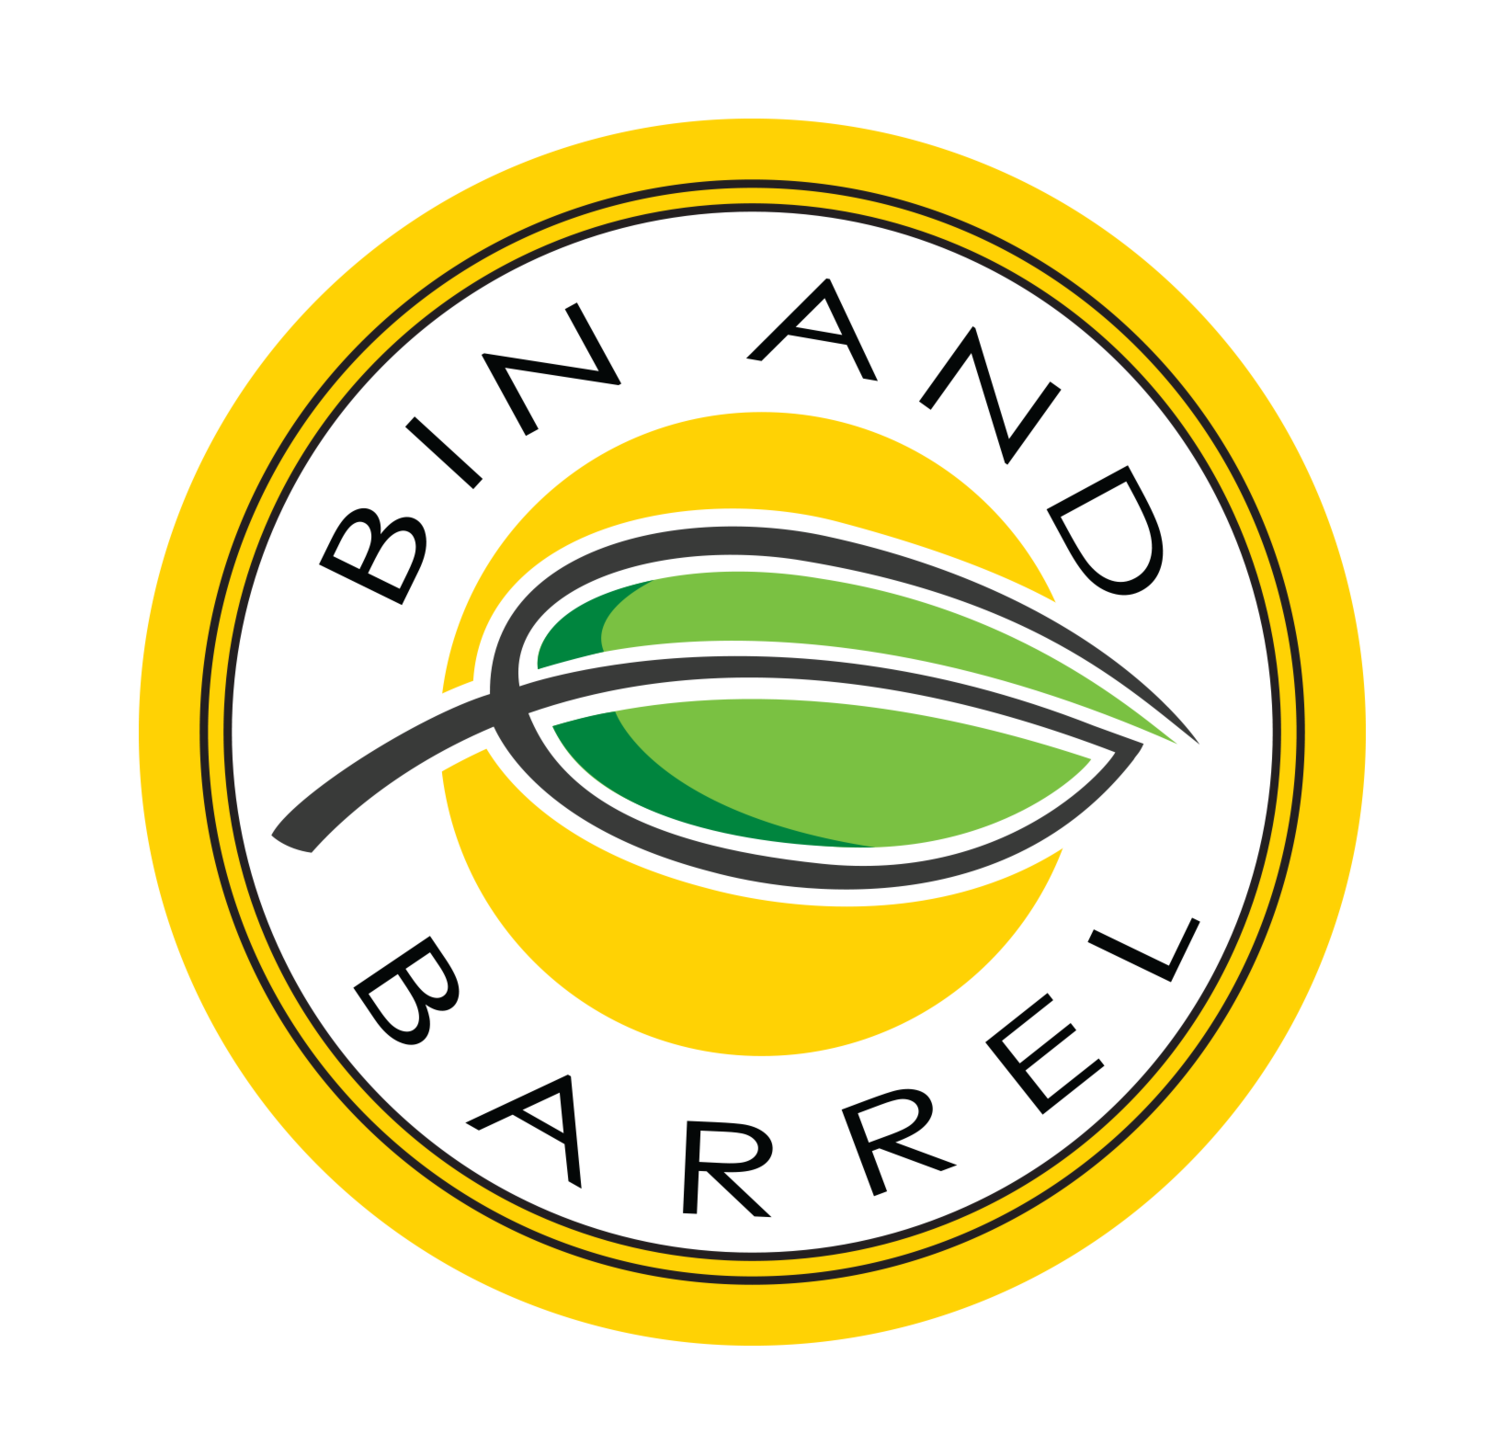 Bin and Barrel